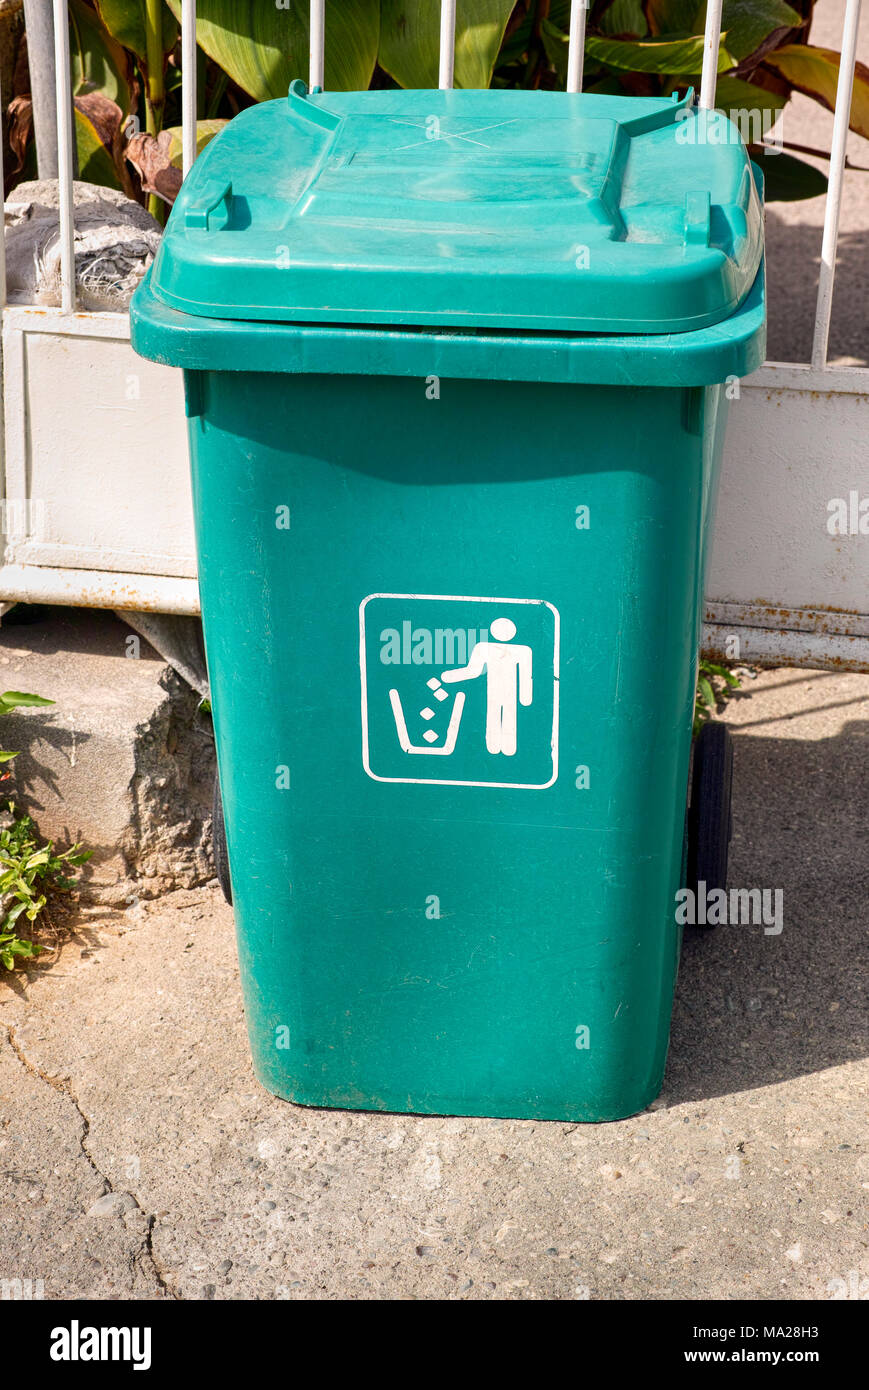 Green garbage can stands in front of fence. - Stock Image